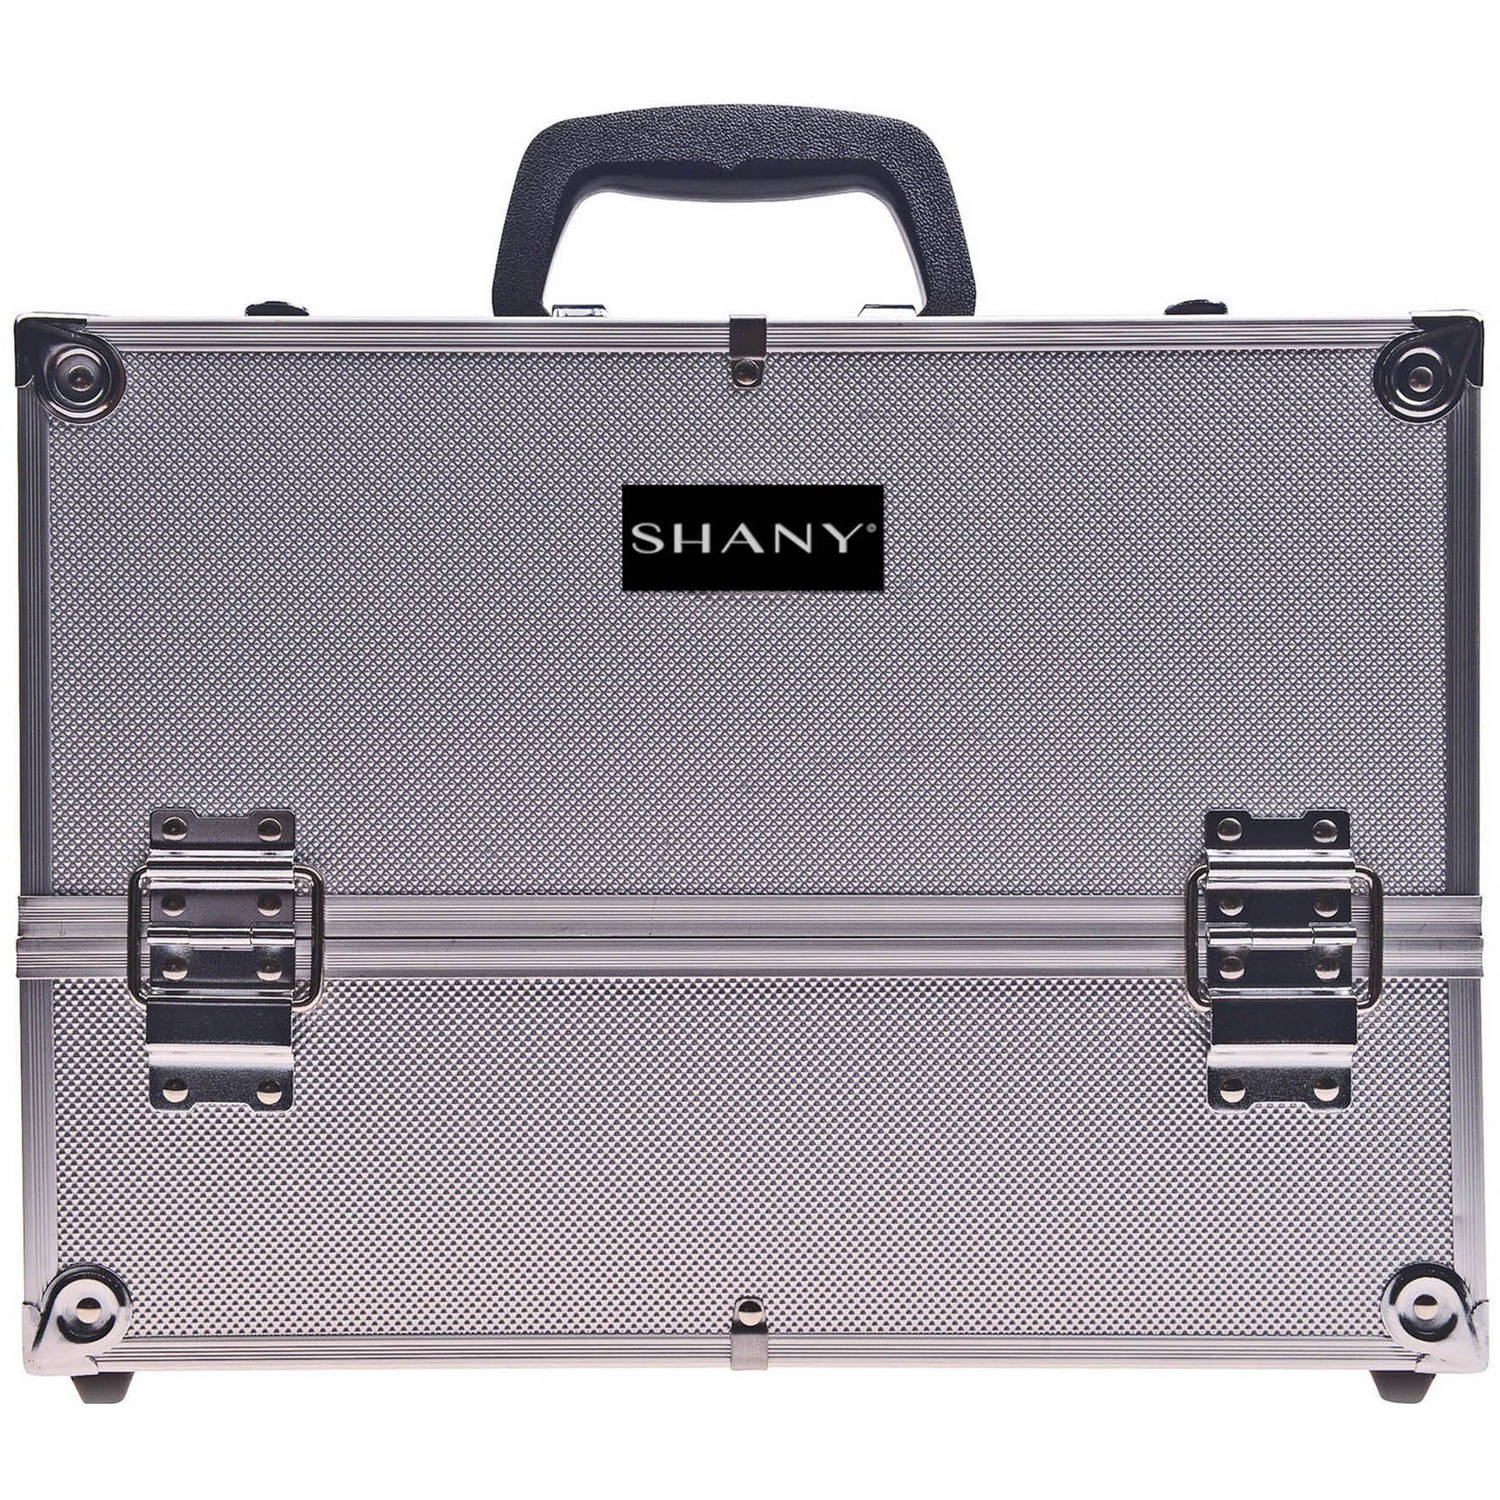 SHANY Essential Professional Makeup Train Case